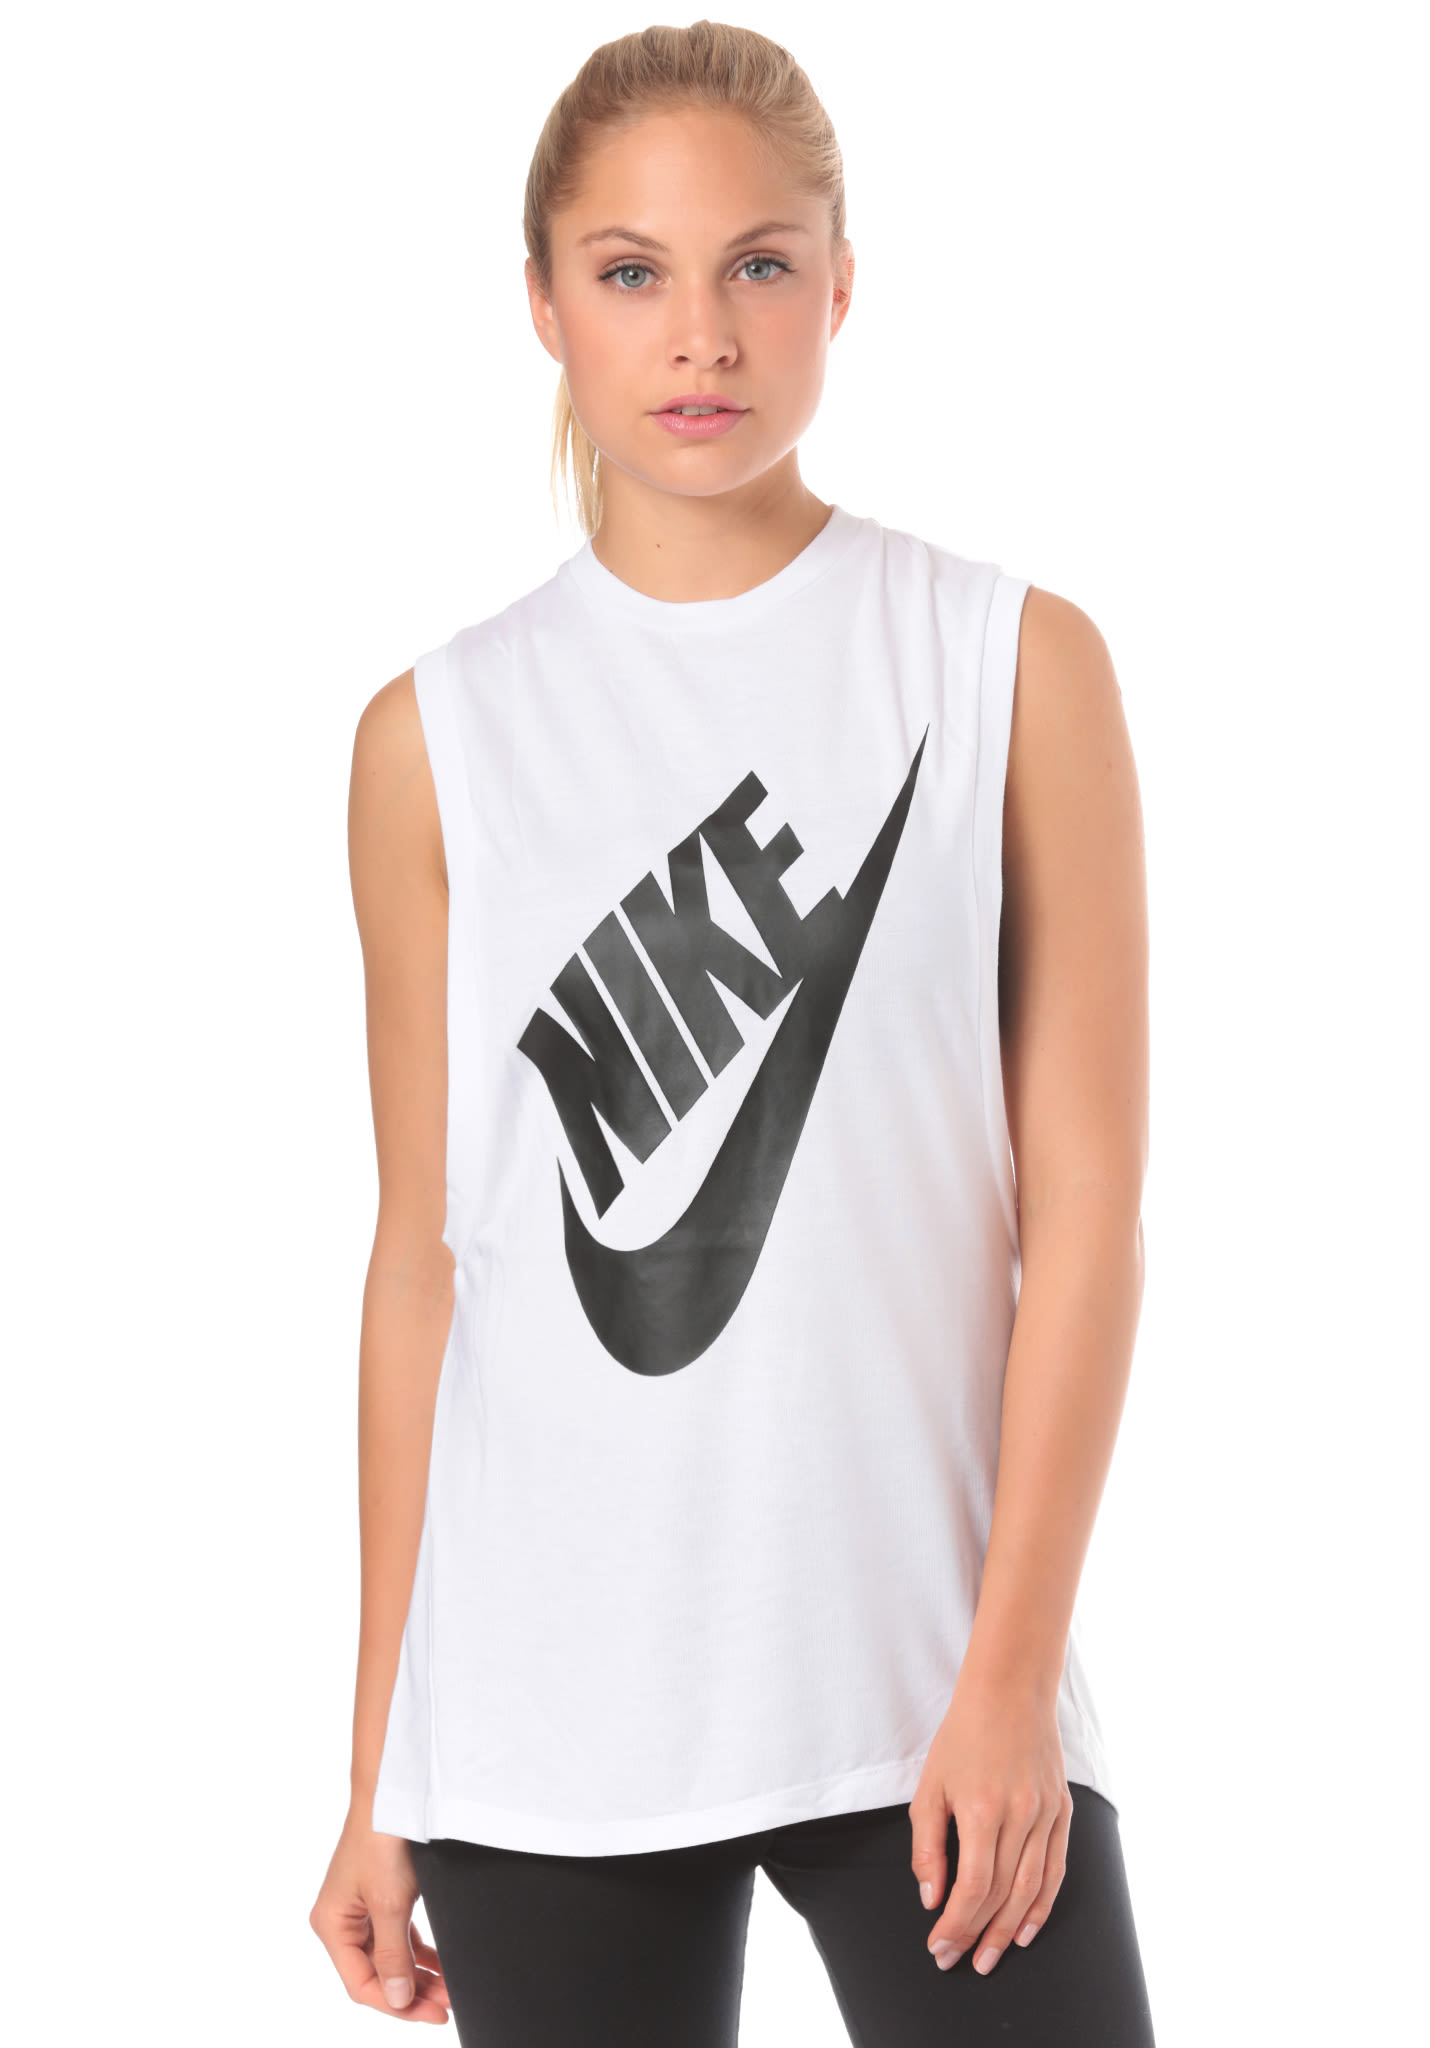 7c838e71766 NIKE SPORTSWEAR Essential Hbr Seasonal - Top for Women - White - Planet  Sports